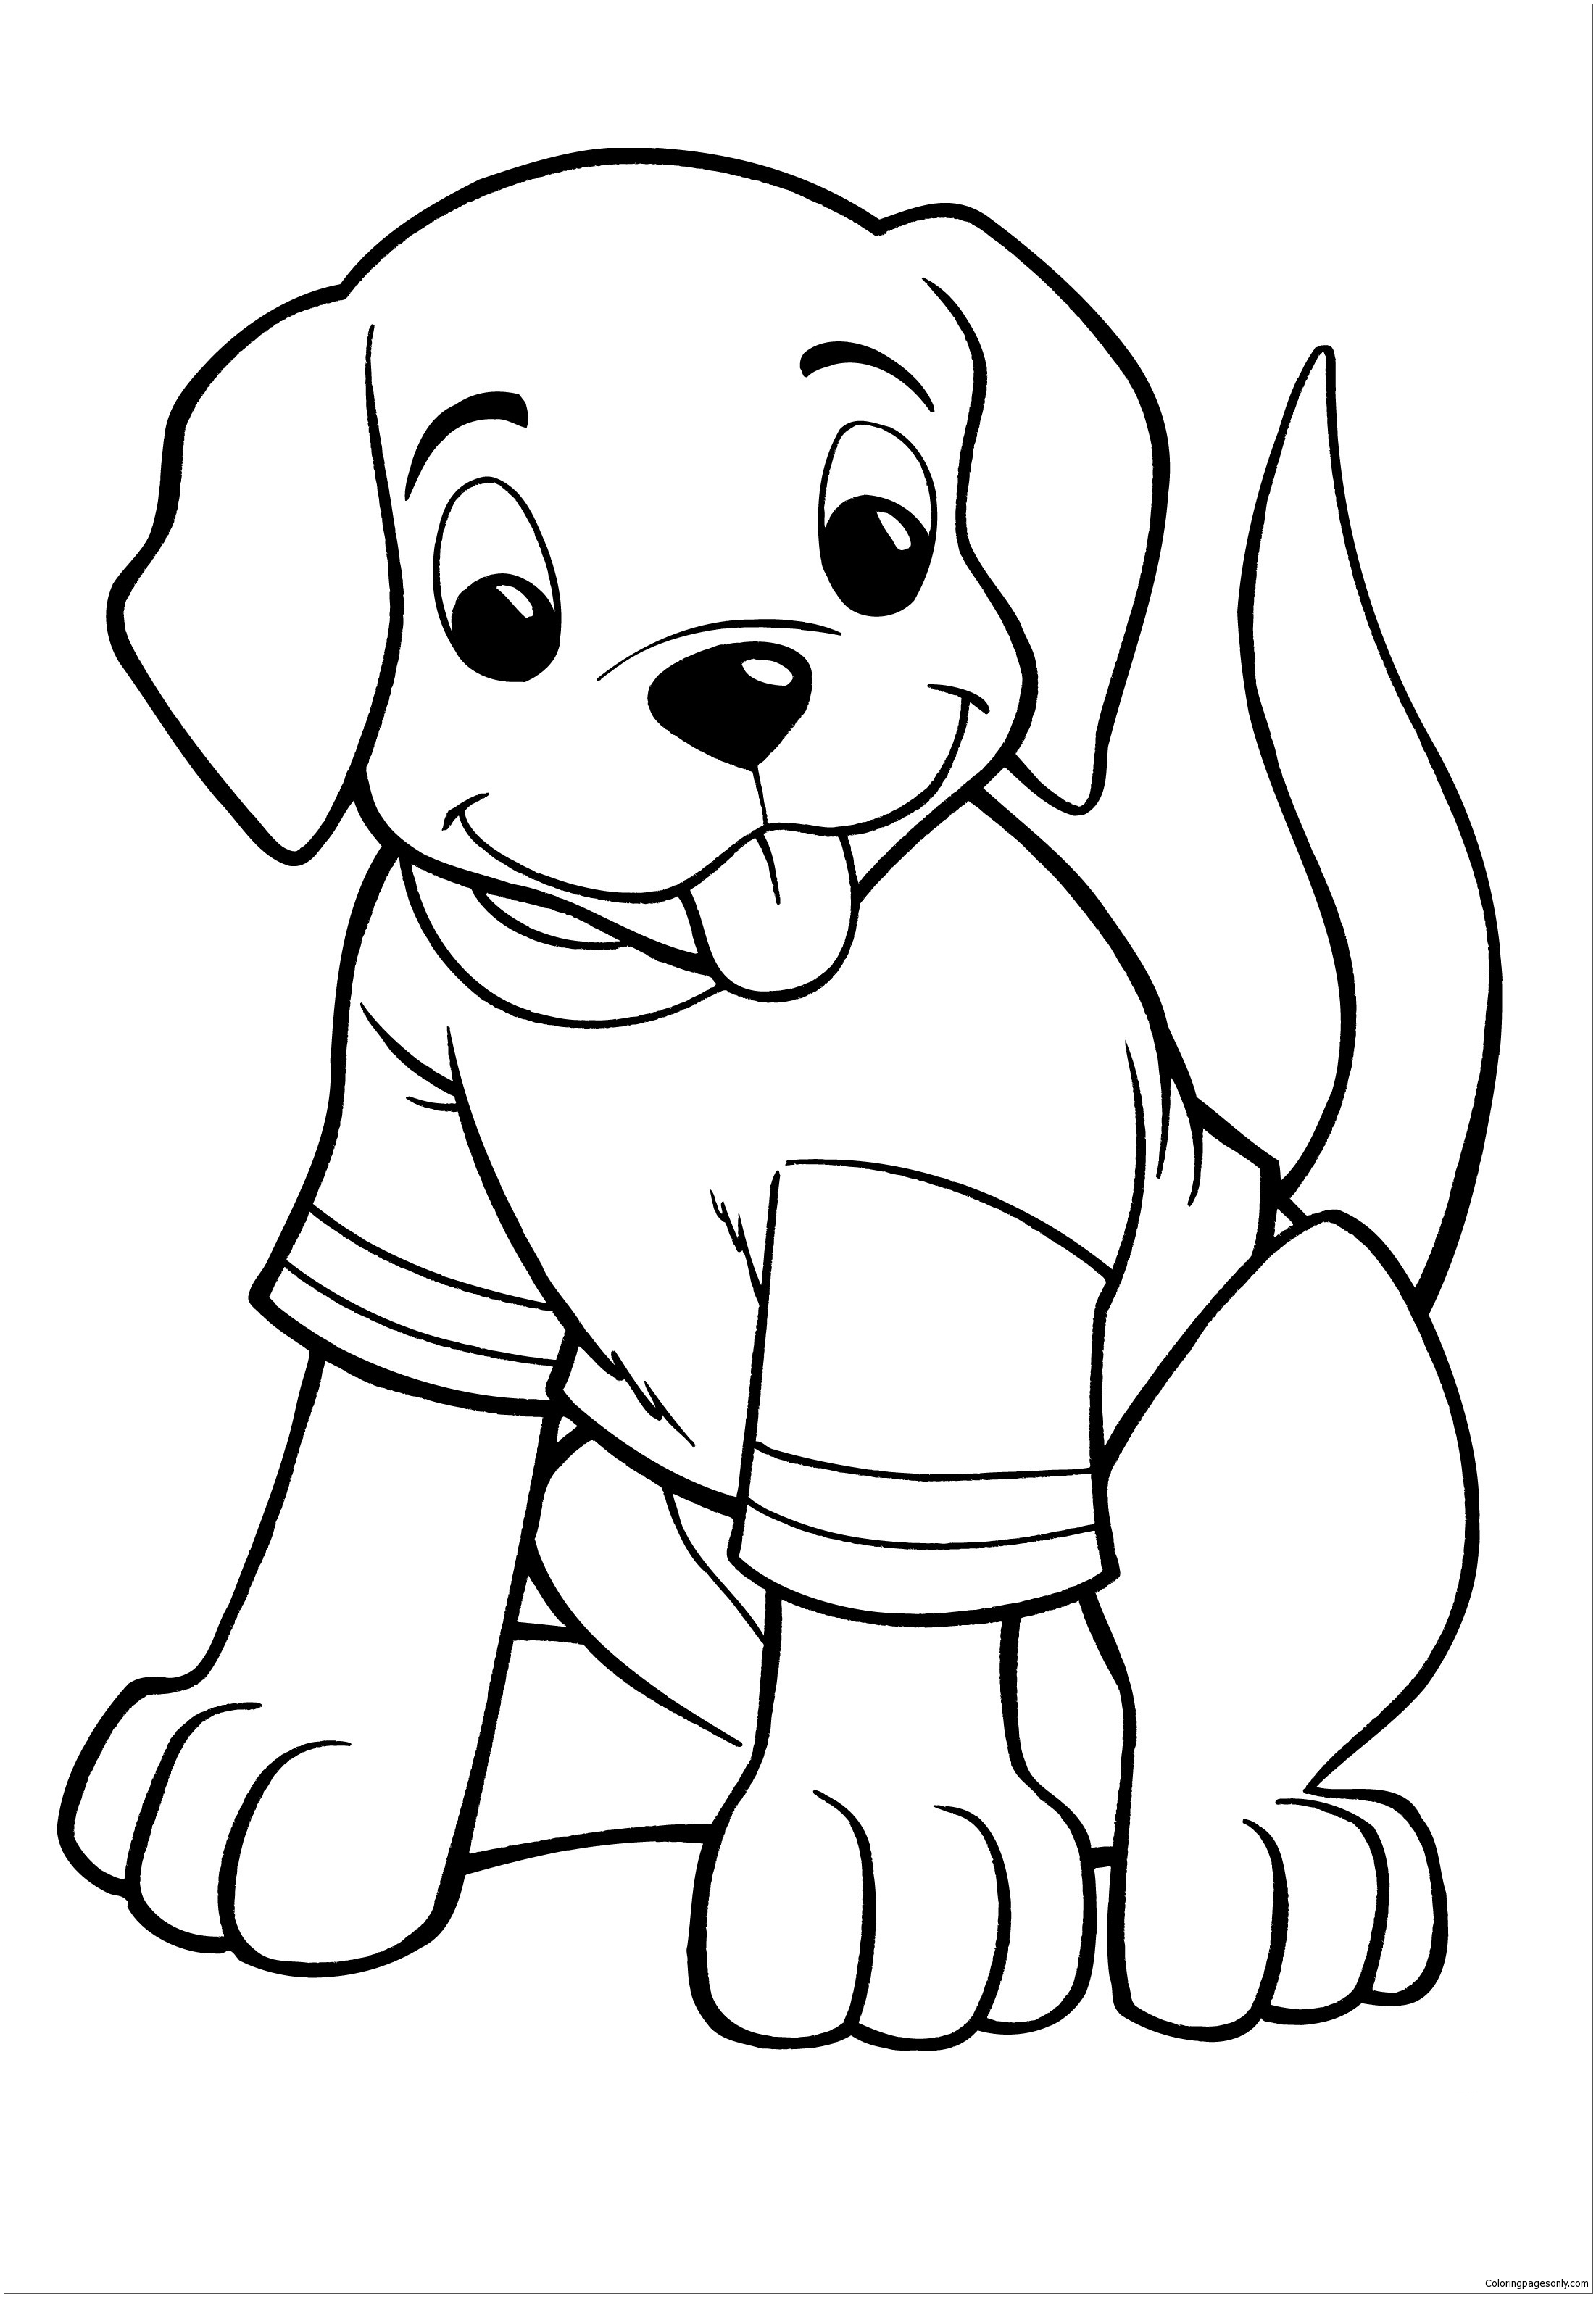 Beagle Puppy Coloring Page - Free Coloring Pages Online